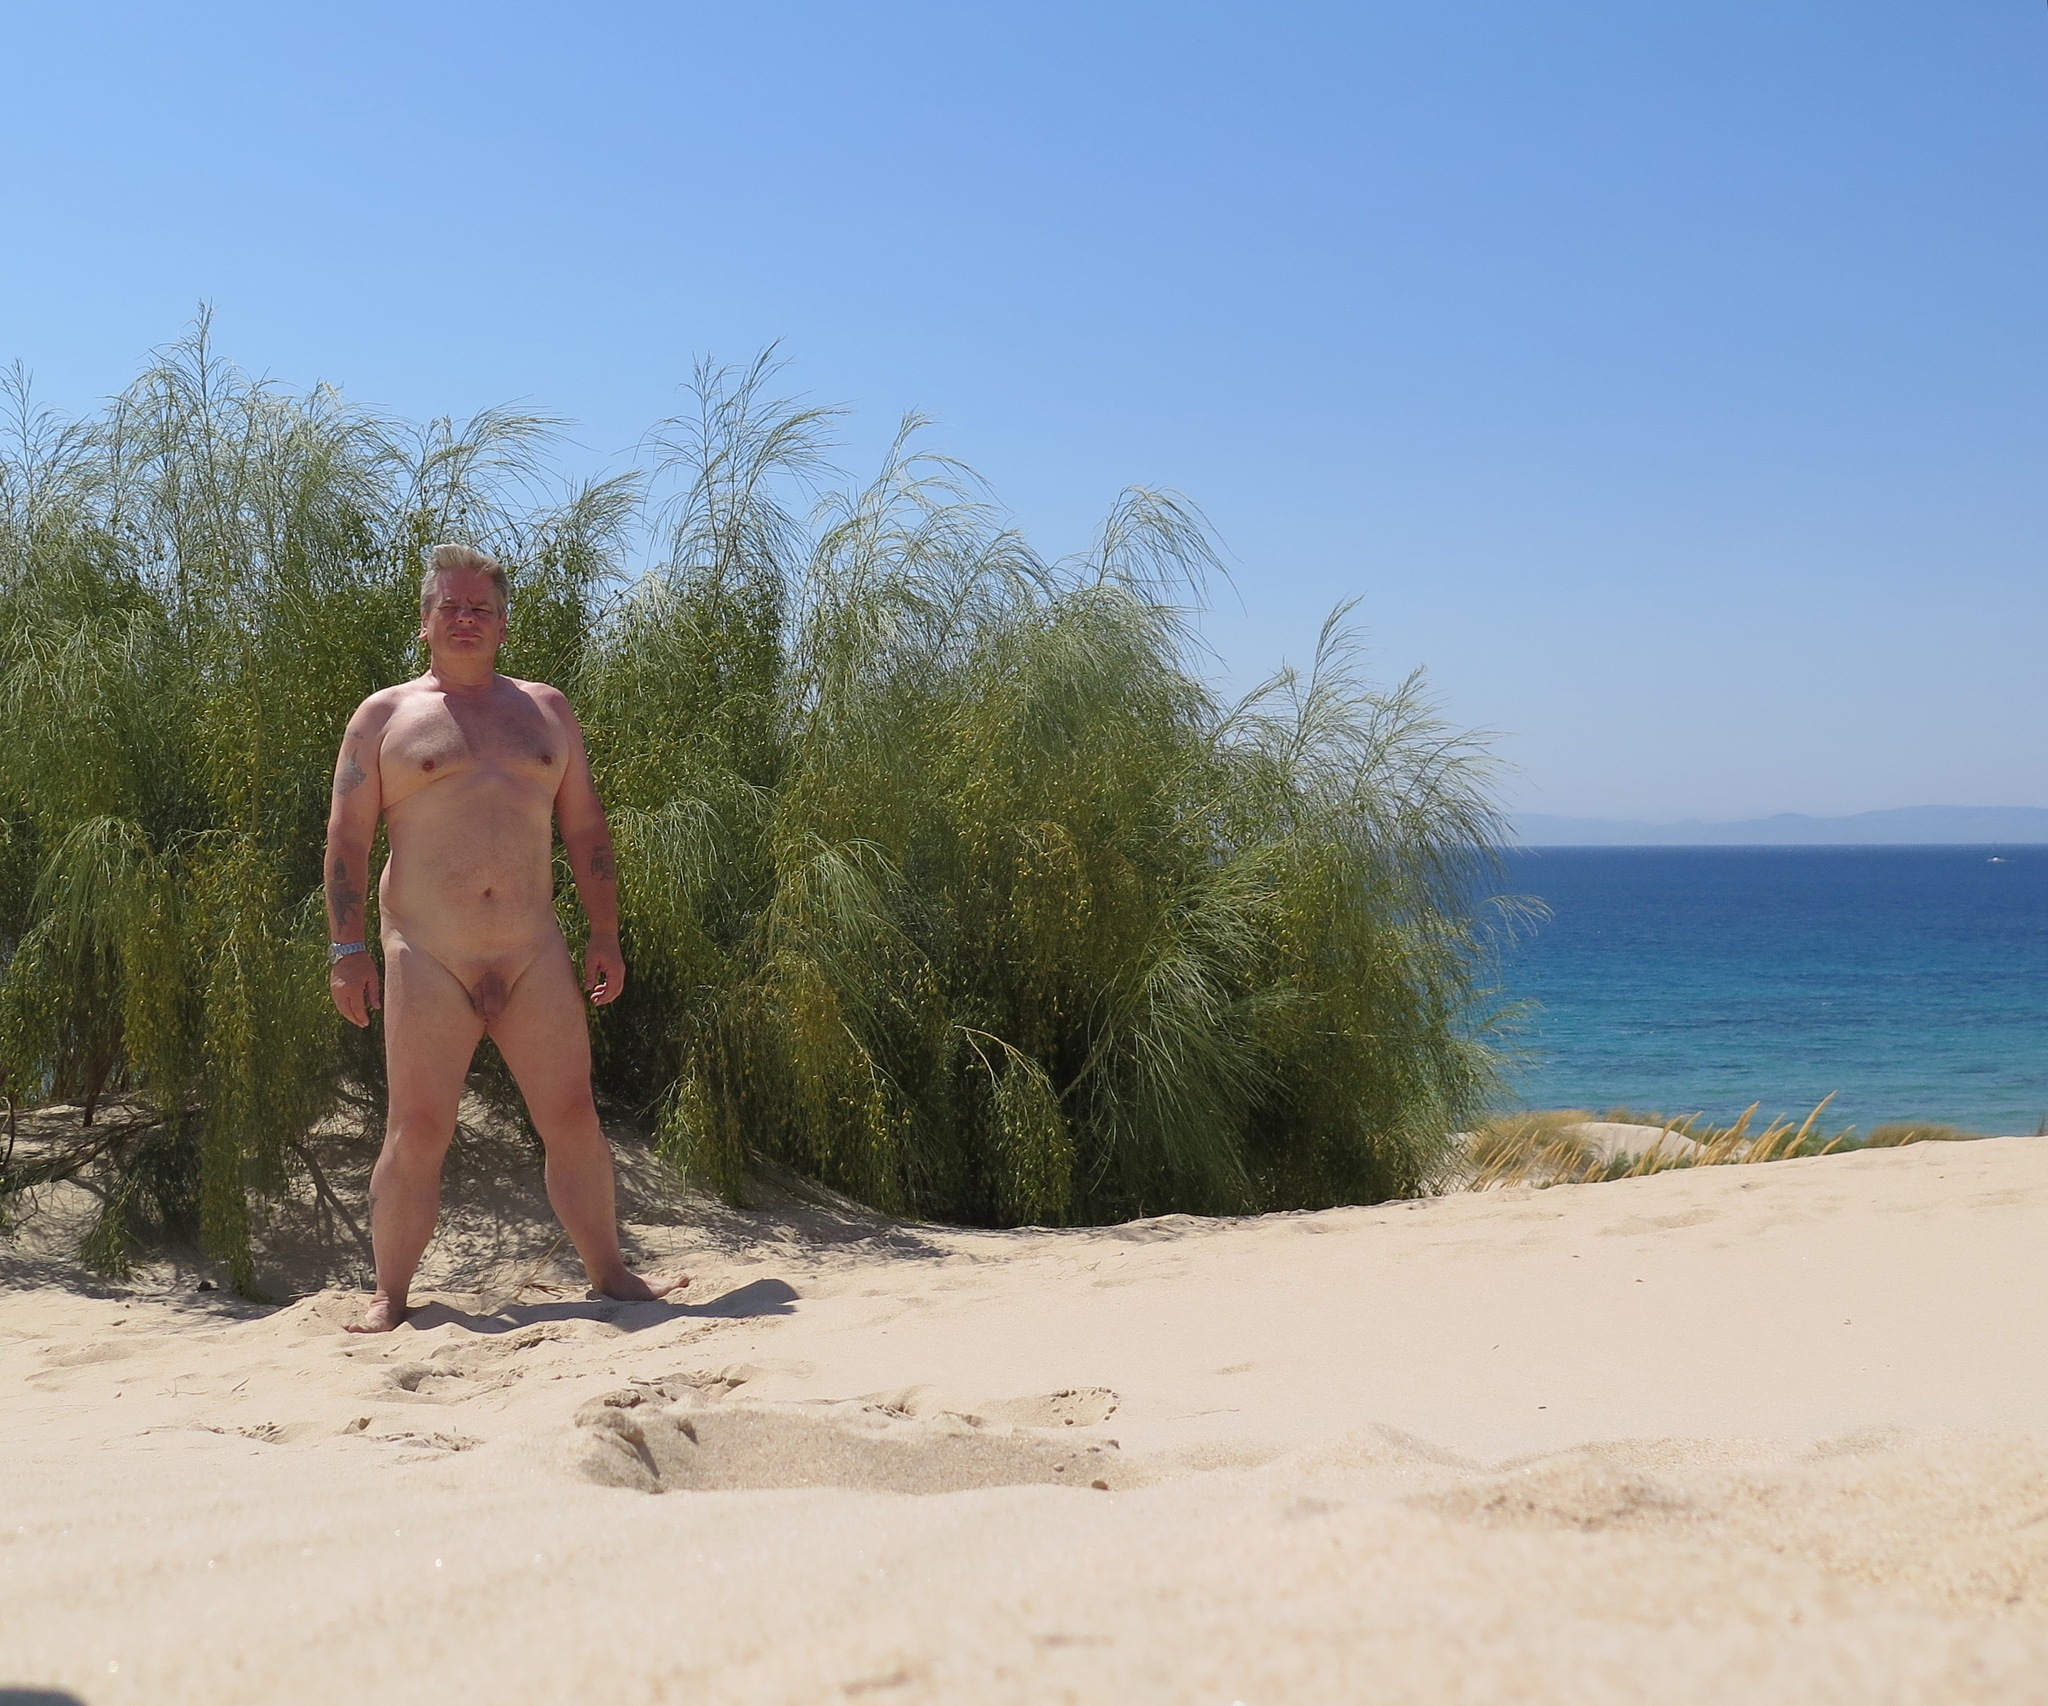 At the naturist beach by SteveR